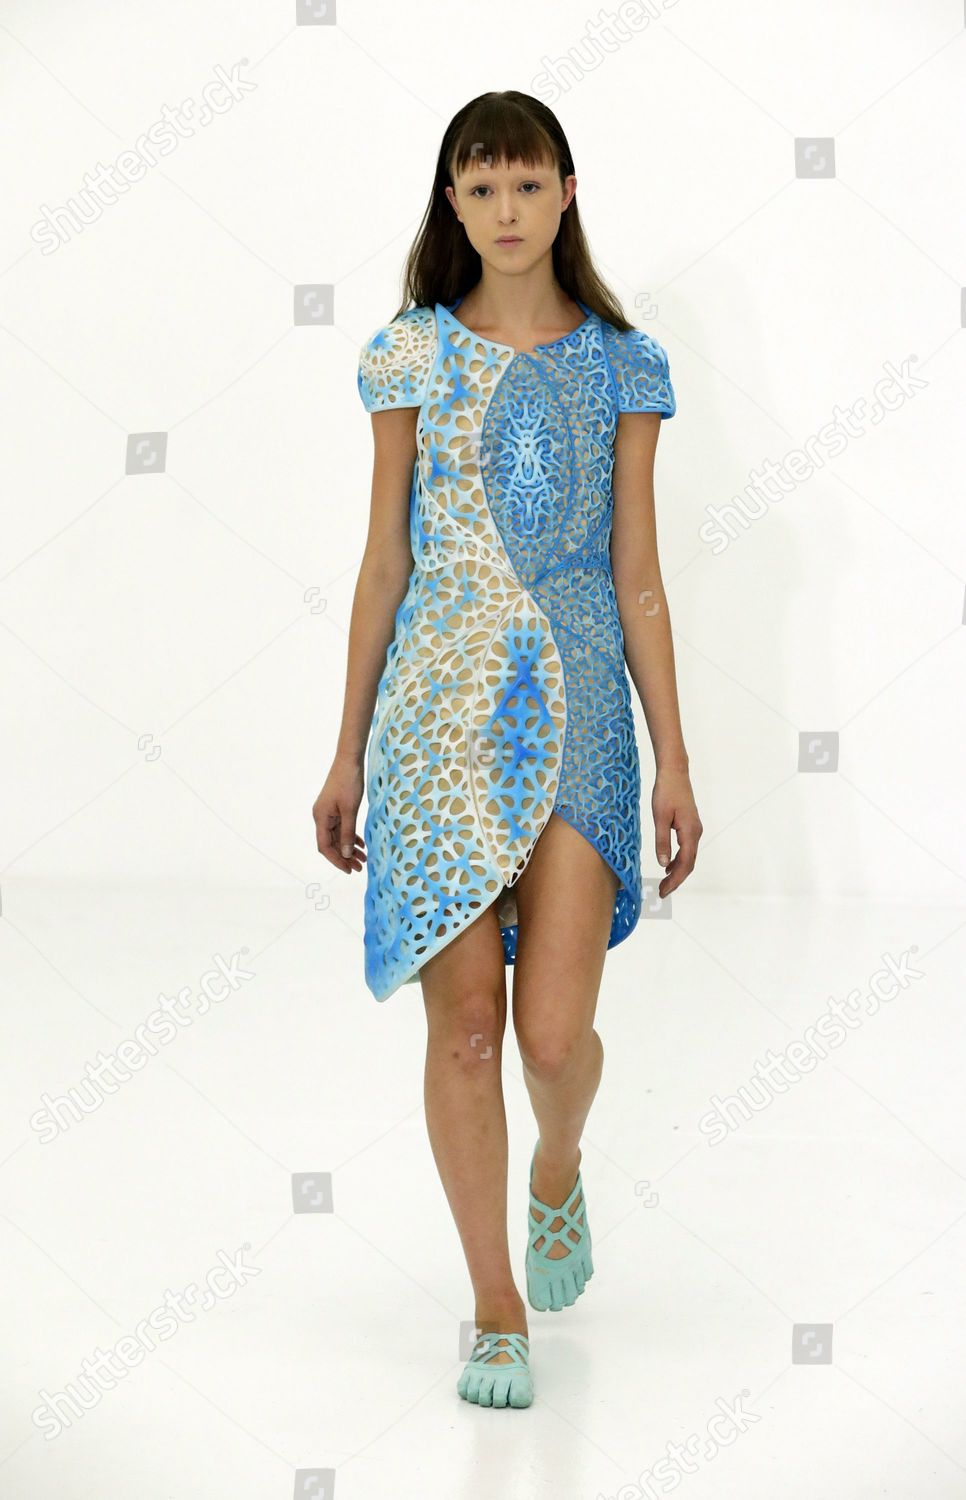 Model Presents Creation By Us Designers Threeasfour Editorial Stock Photo Stock Image Shutterstock